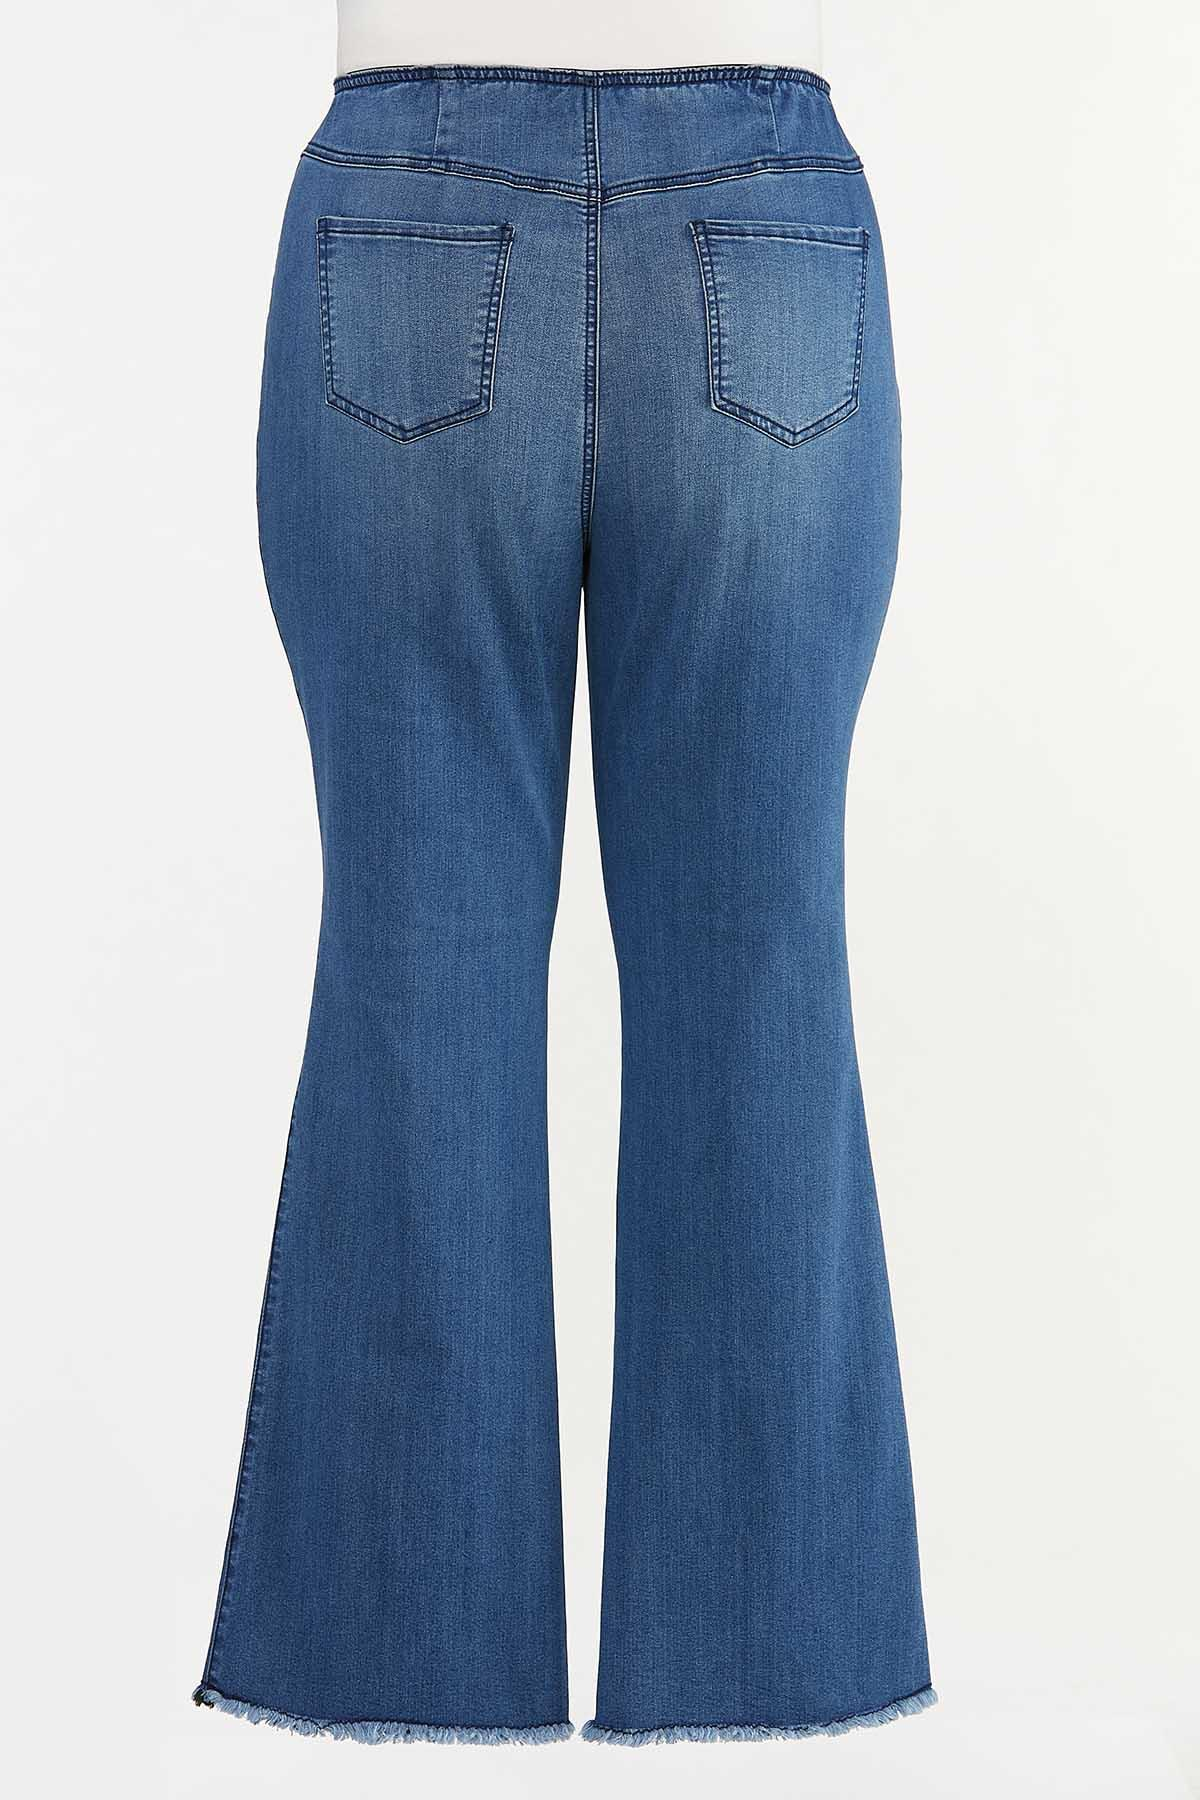 Plus Petite Floral Embroidered Flare Jeans (Item #44665534)